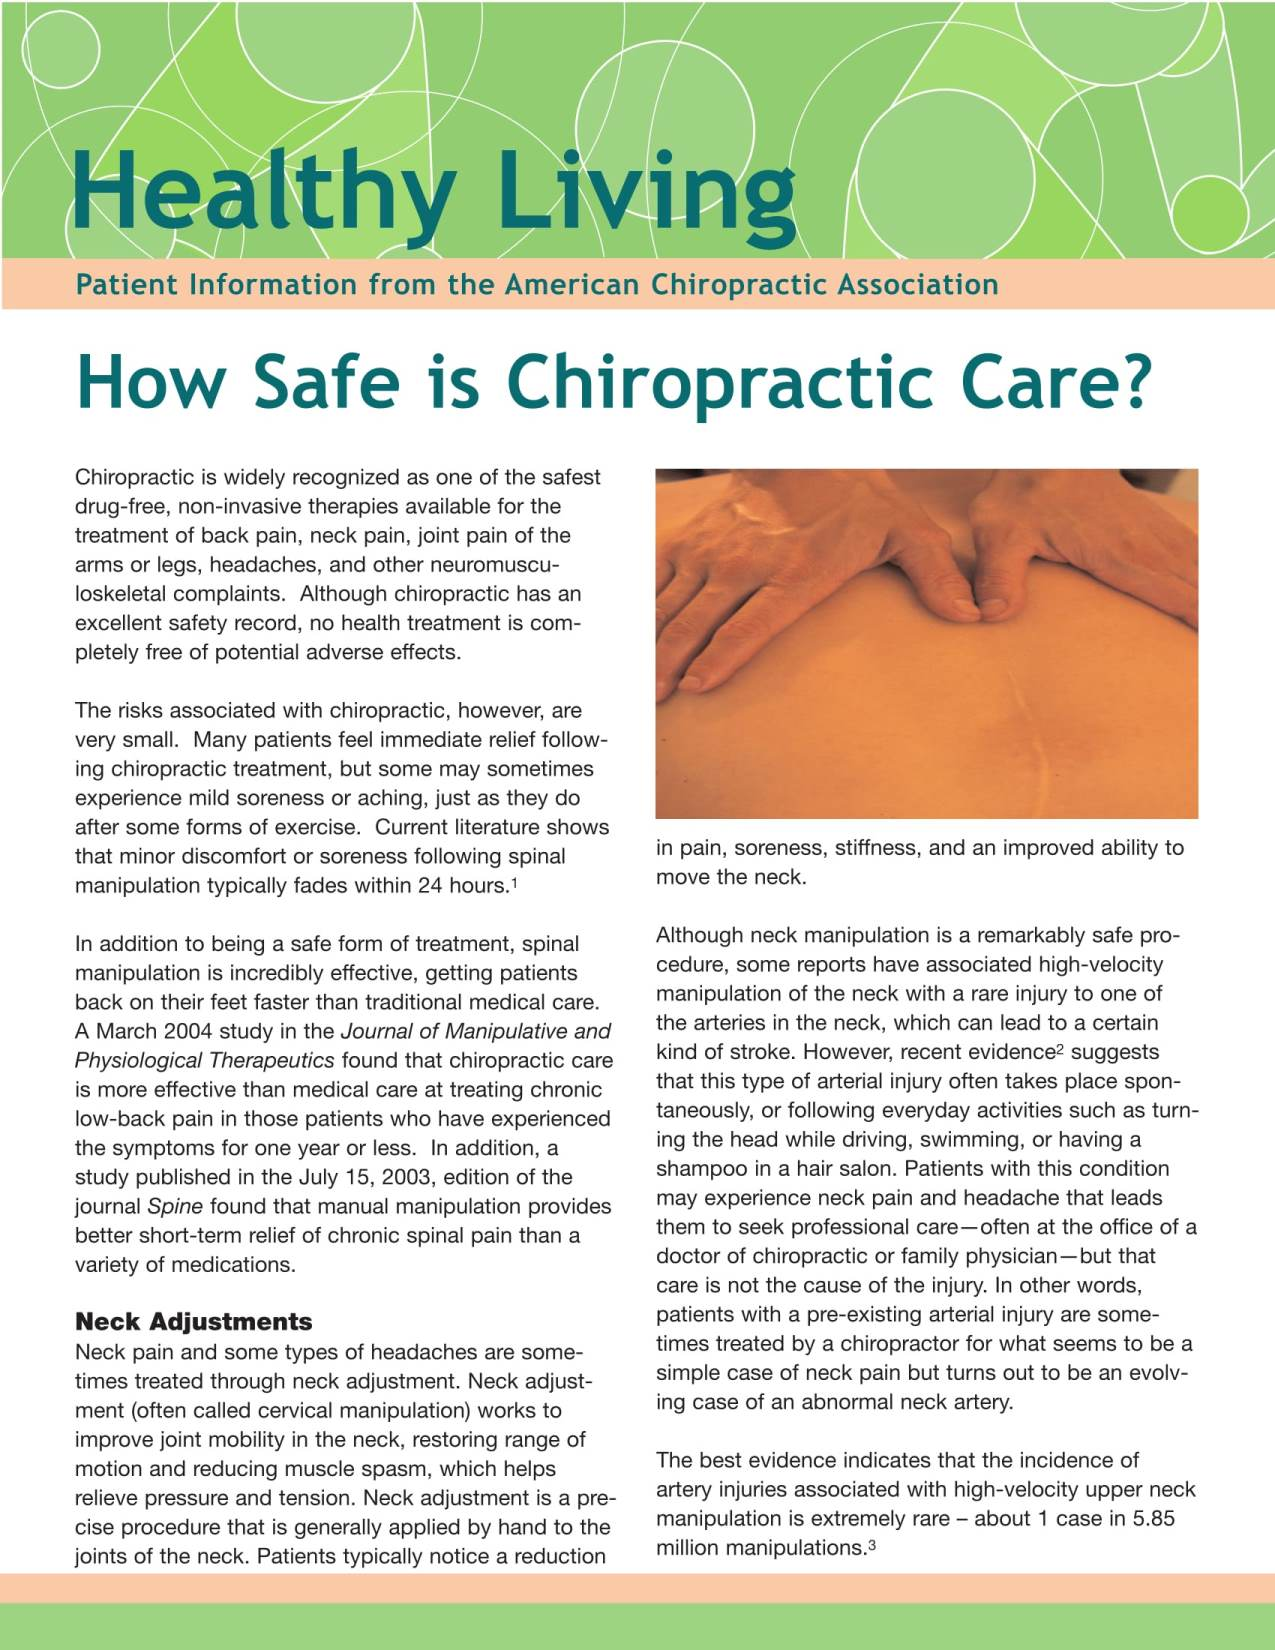 GHC Chiropractic